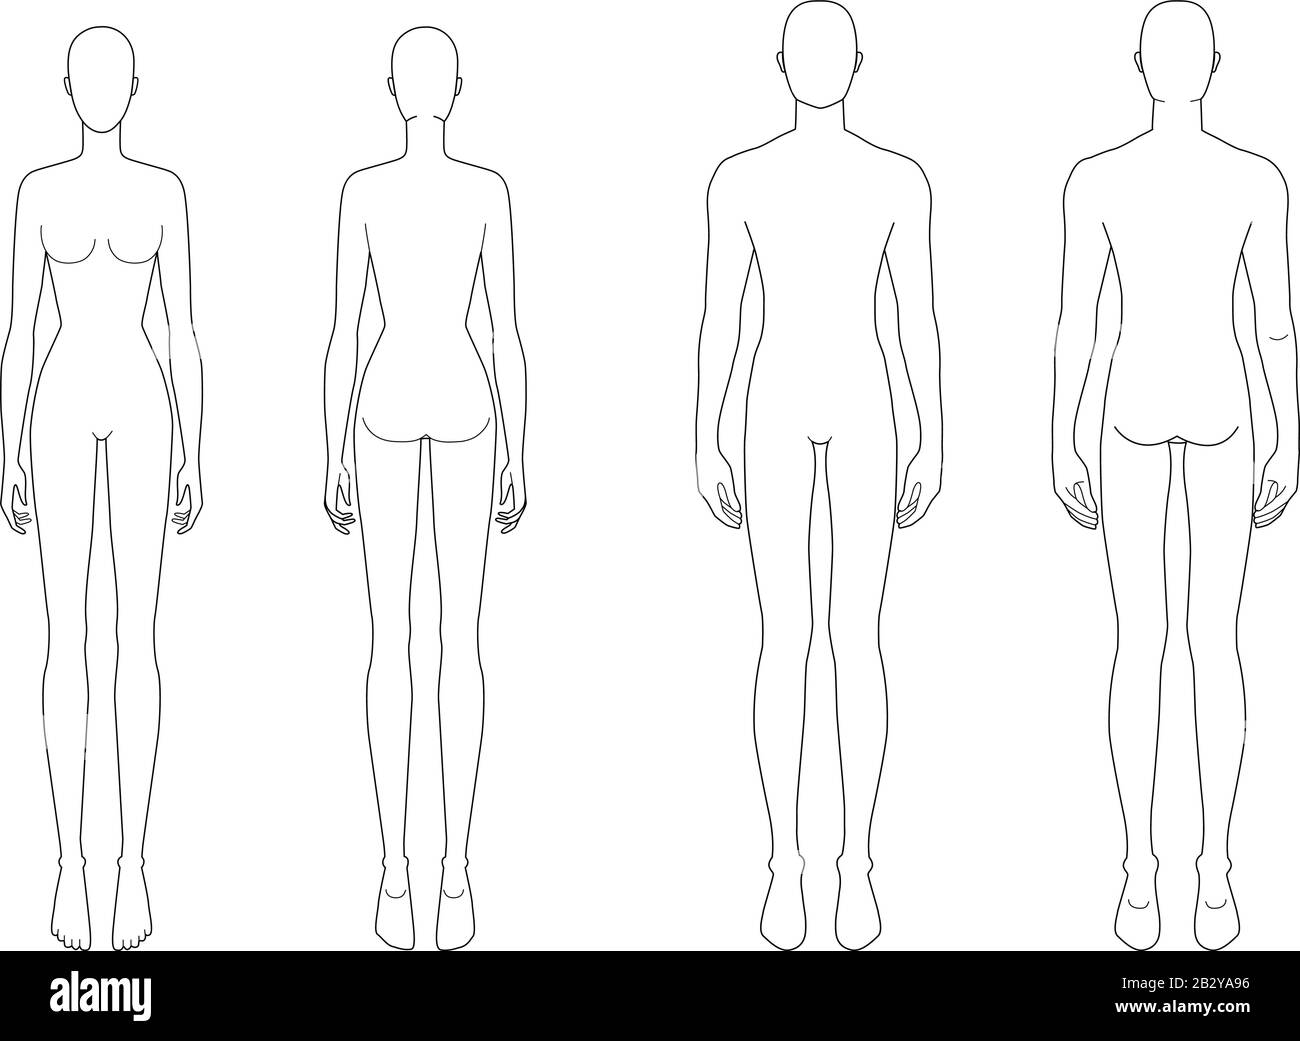 Fashion Template Of Standing Men And Women 9 Head Size For Technical Drawing Gentlemen And Lady Figure Front And Back View Vector Outline Boy And Girl For Fashion Sketching And Illustration Stock